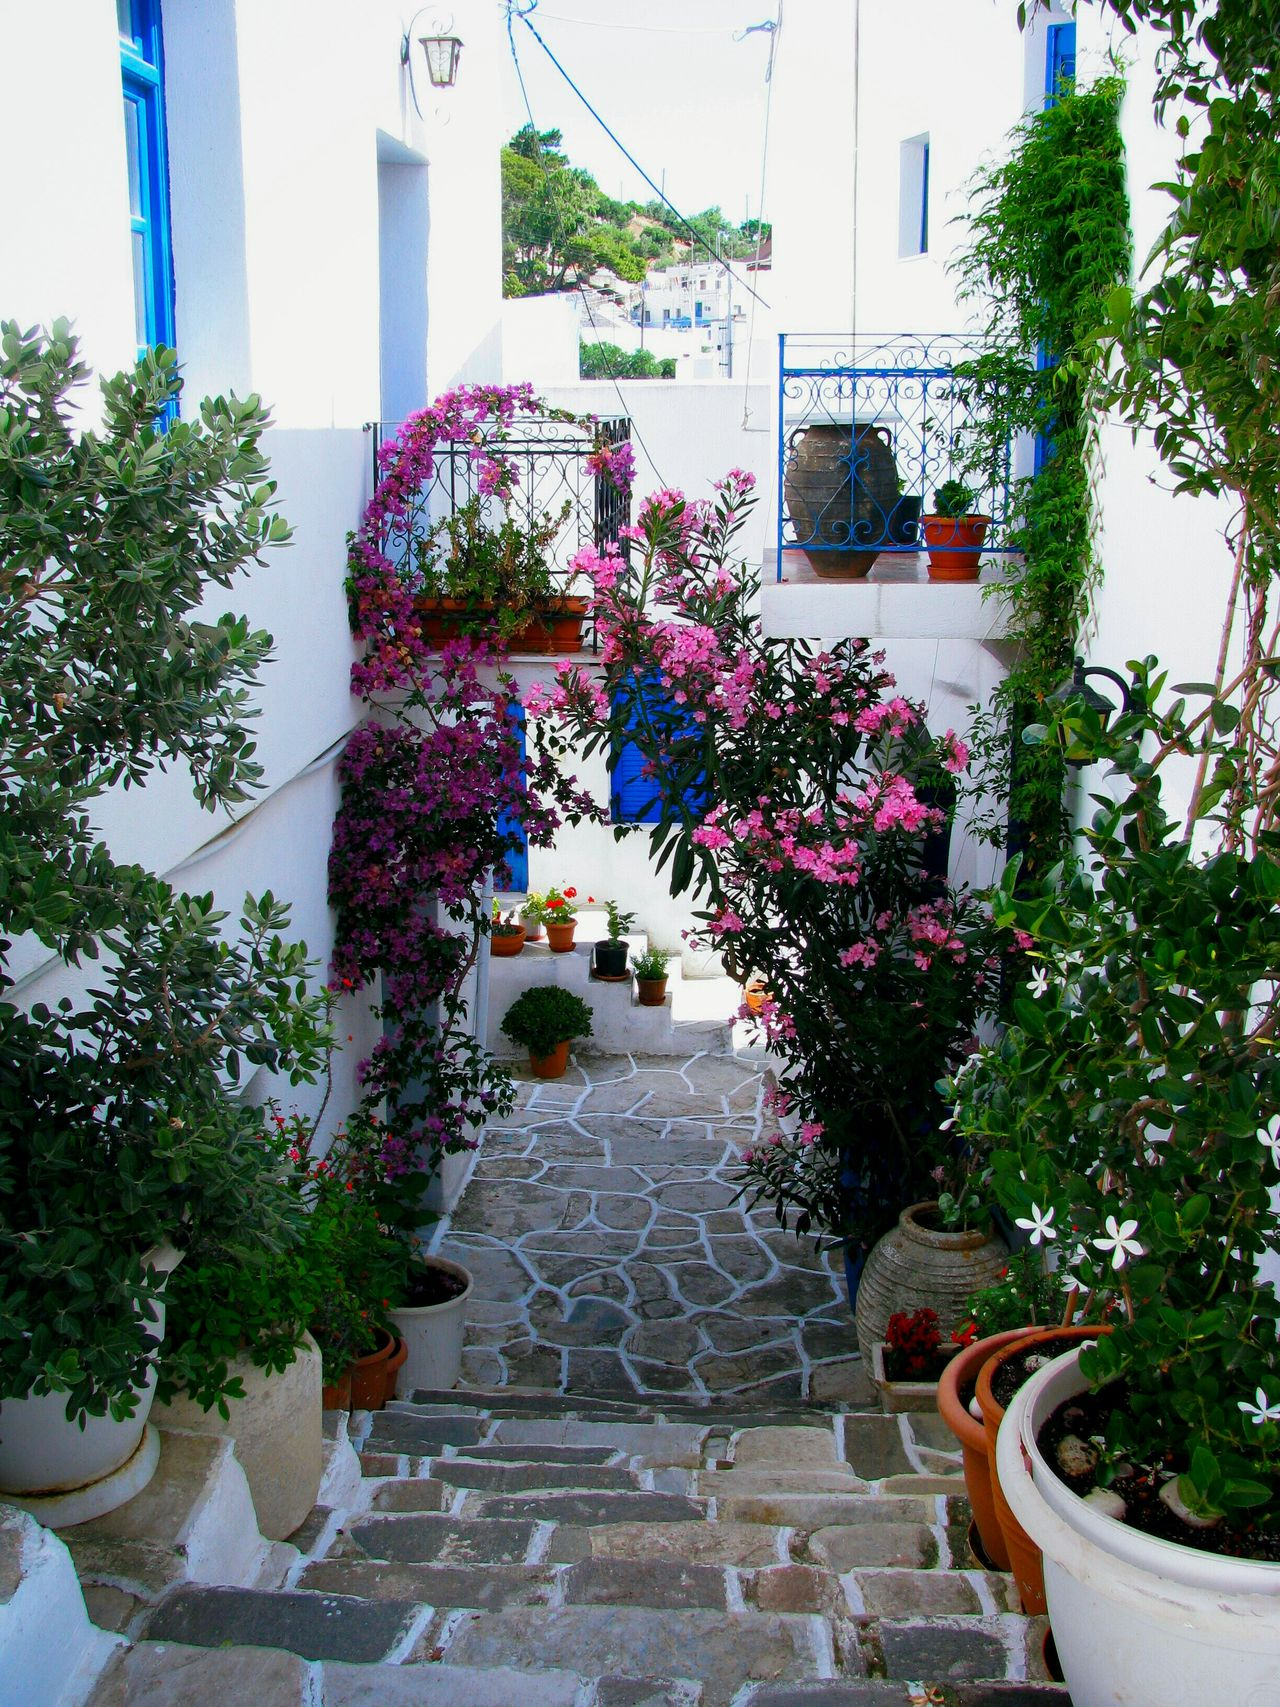 Alley House Village Picturesque Flowers Plants No People Houses Greek Islands Flower Pots Lefkes Paros Island Summer Memories 🌄 Yeah Springtime! Pastel Power